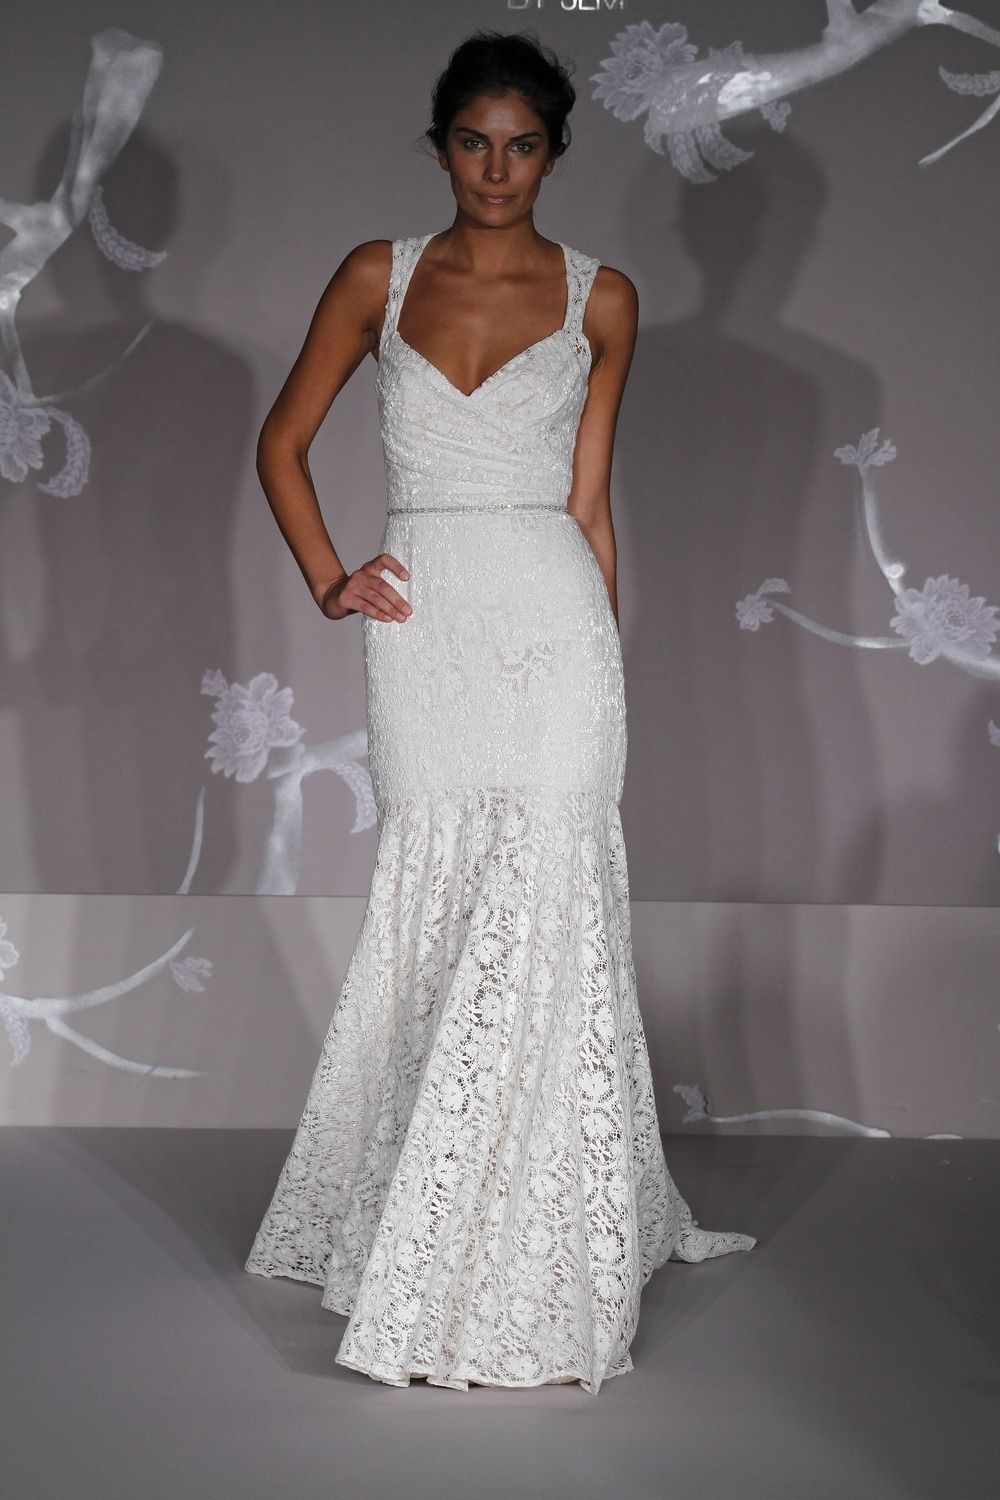 All Lace White Mermaid Wedding Dress With V Neckline And Rhinestone